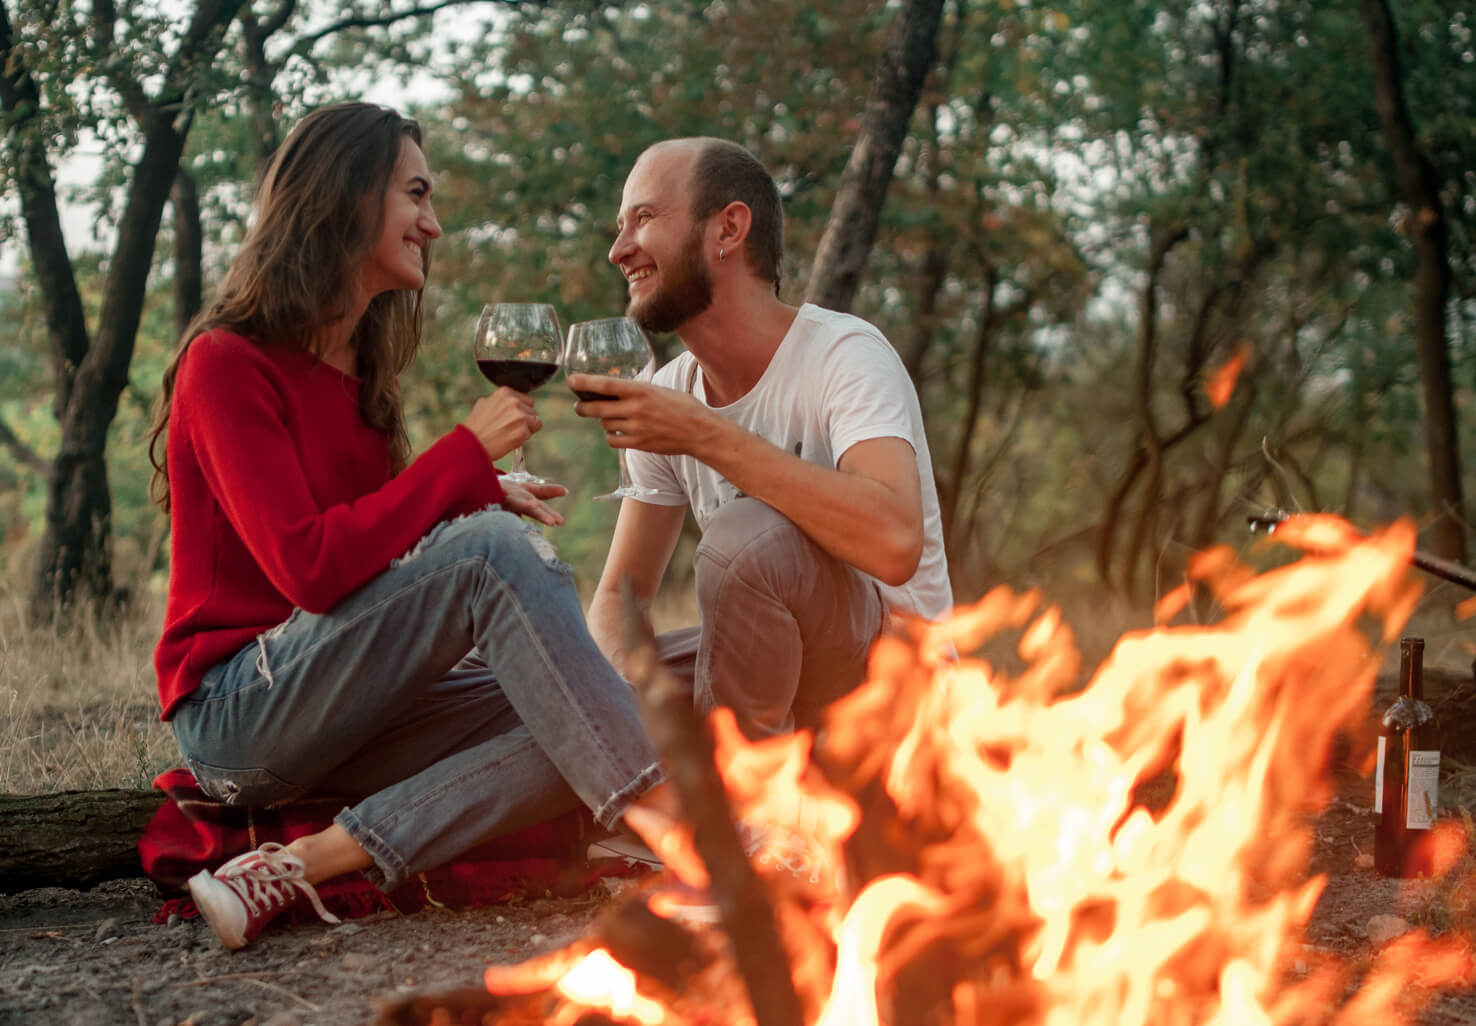 couple by campfire with wine glasses on Illinois honeymoon